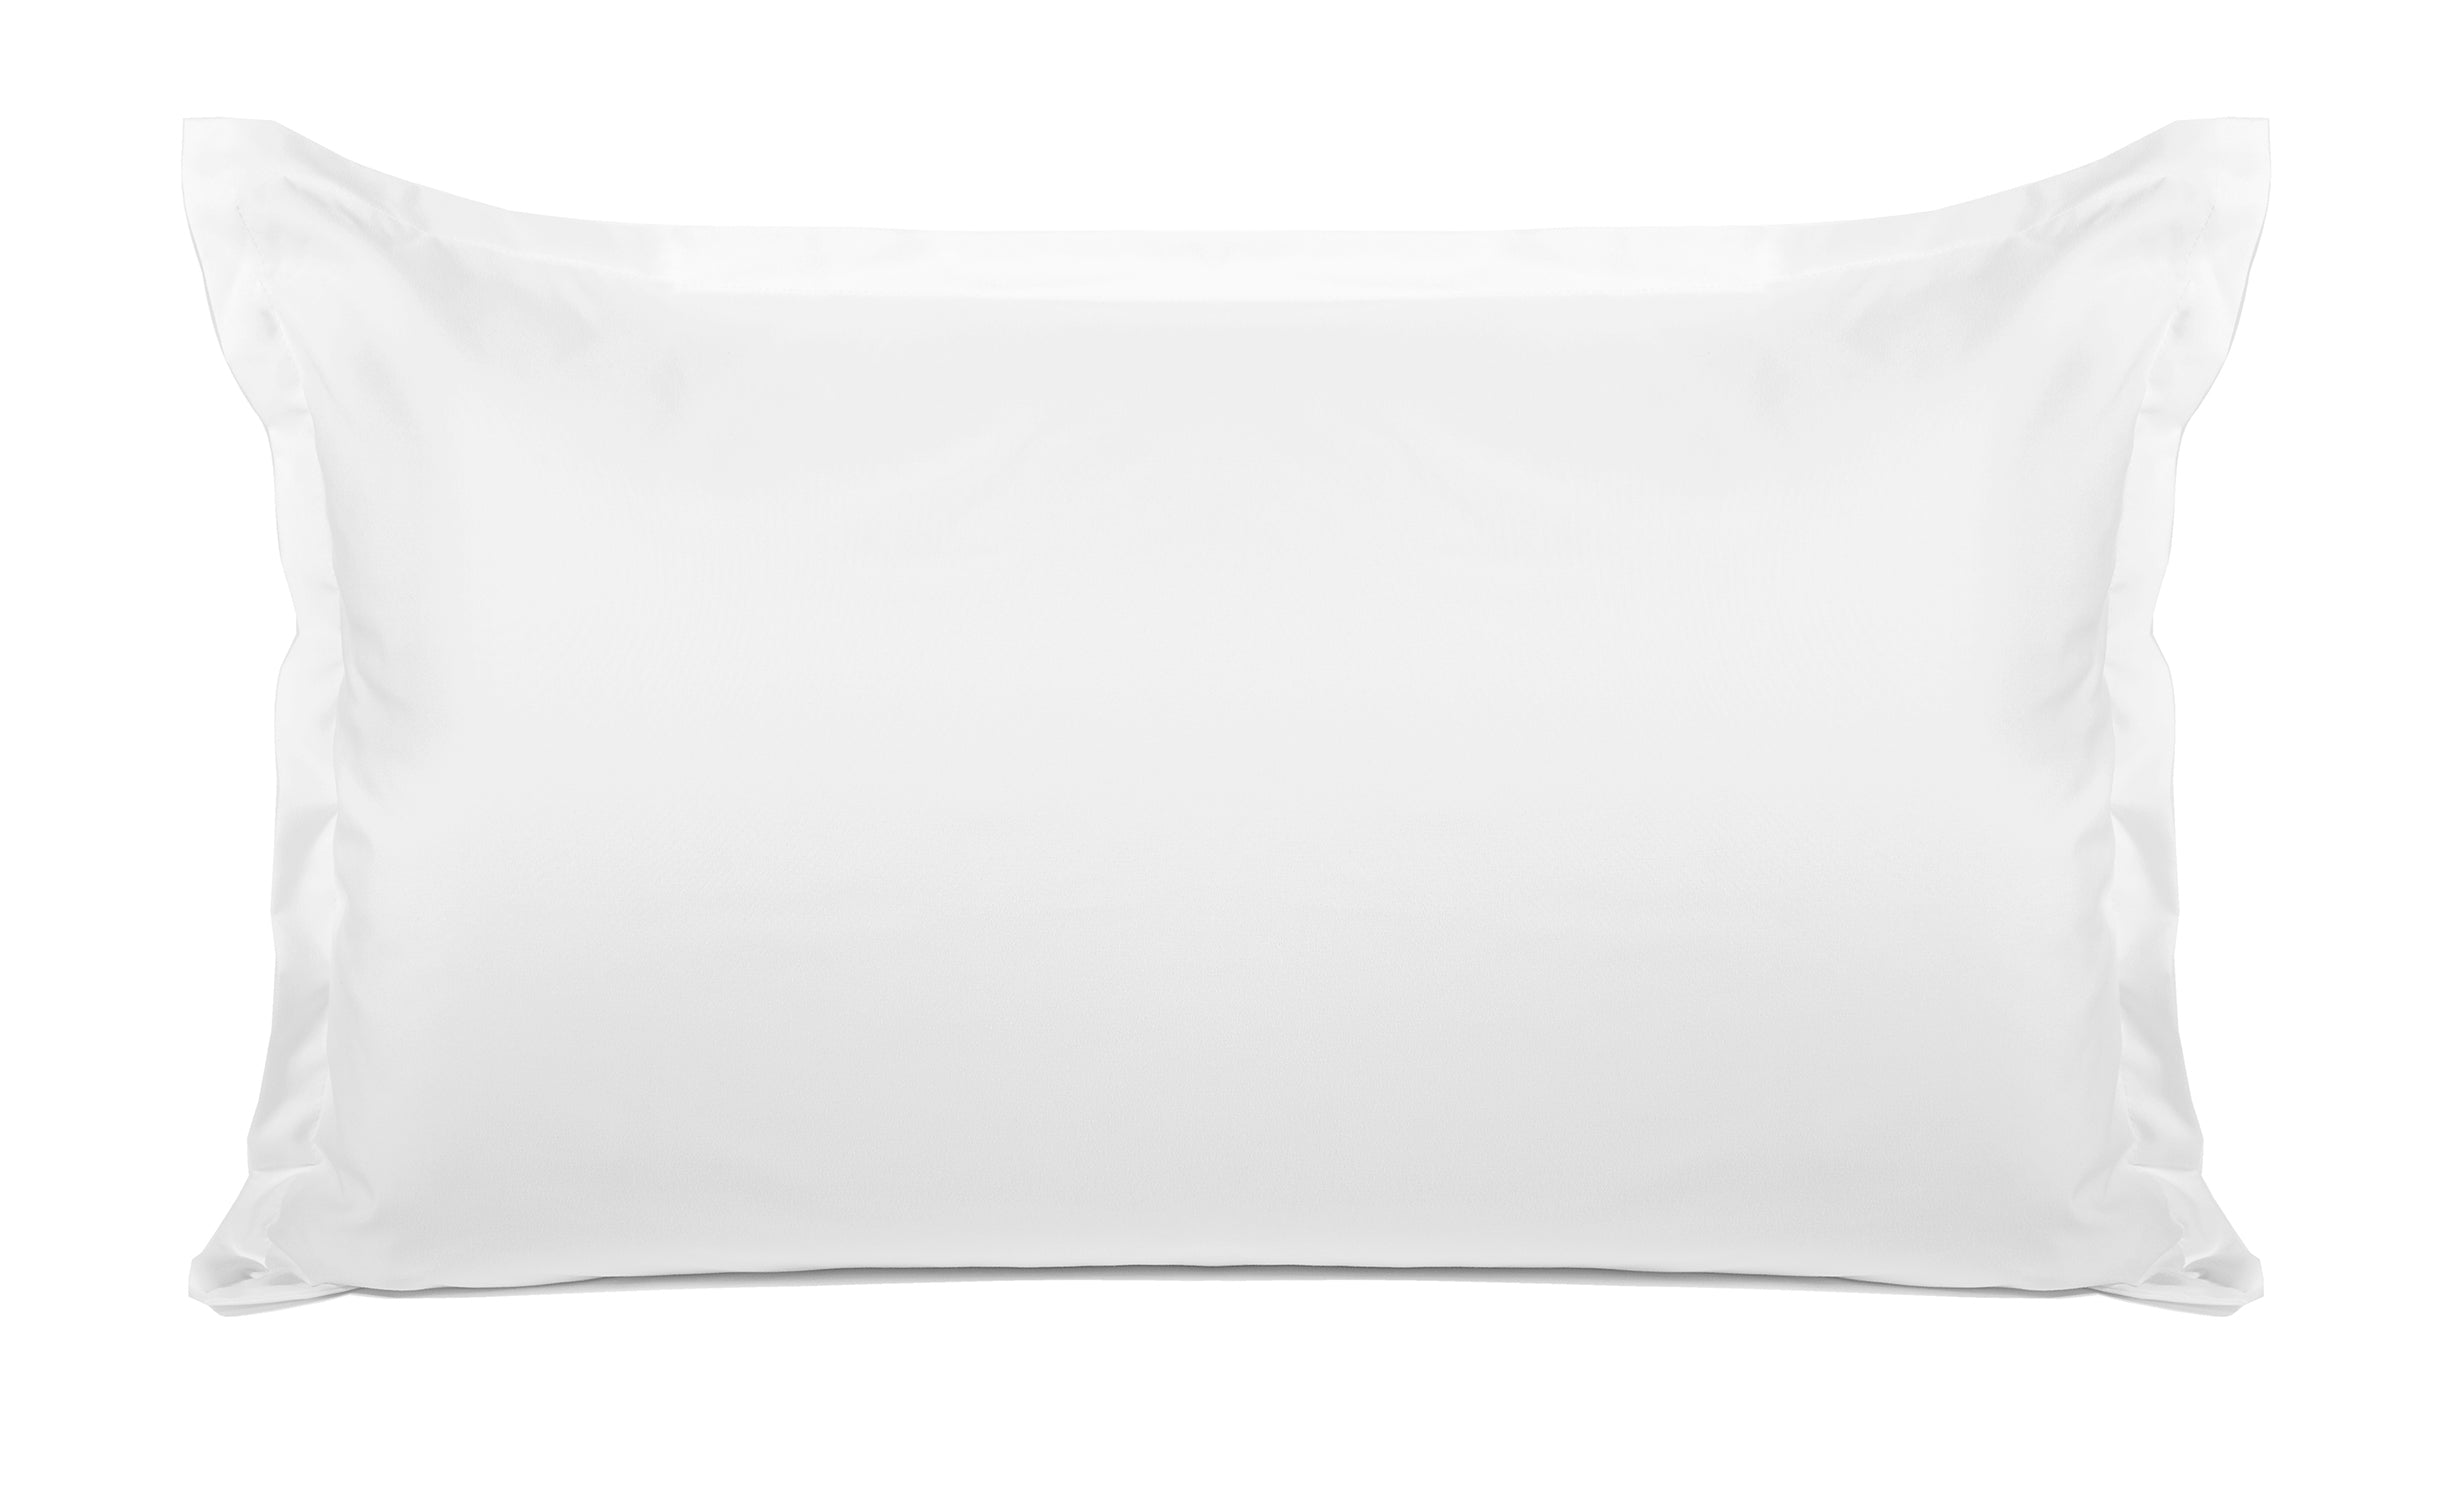 Personalized Name Pillow case, Di Lewis Personalized Pillows